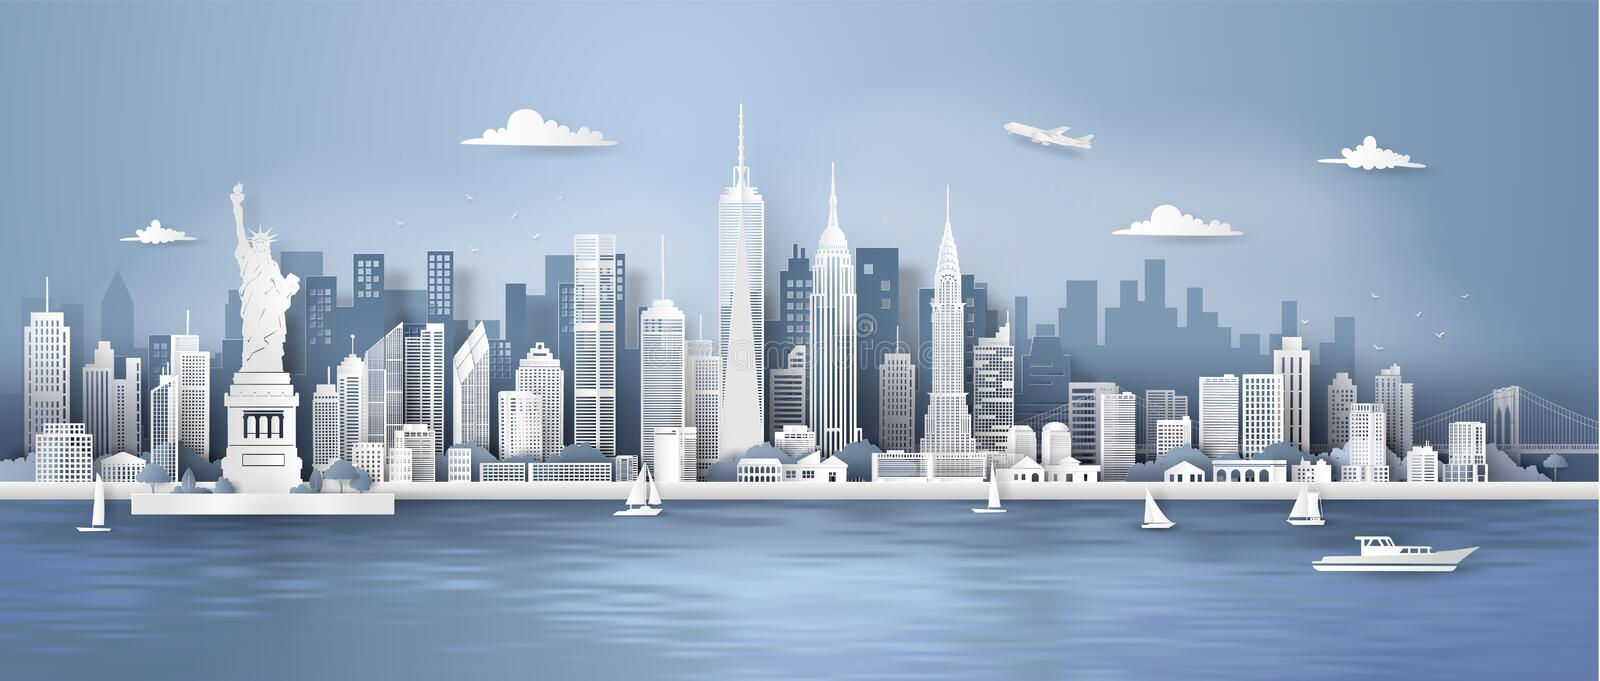 Manhattan,New York City panorama skyline with urban skyscrapers.. vector illustration